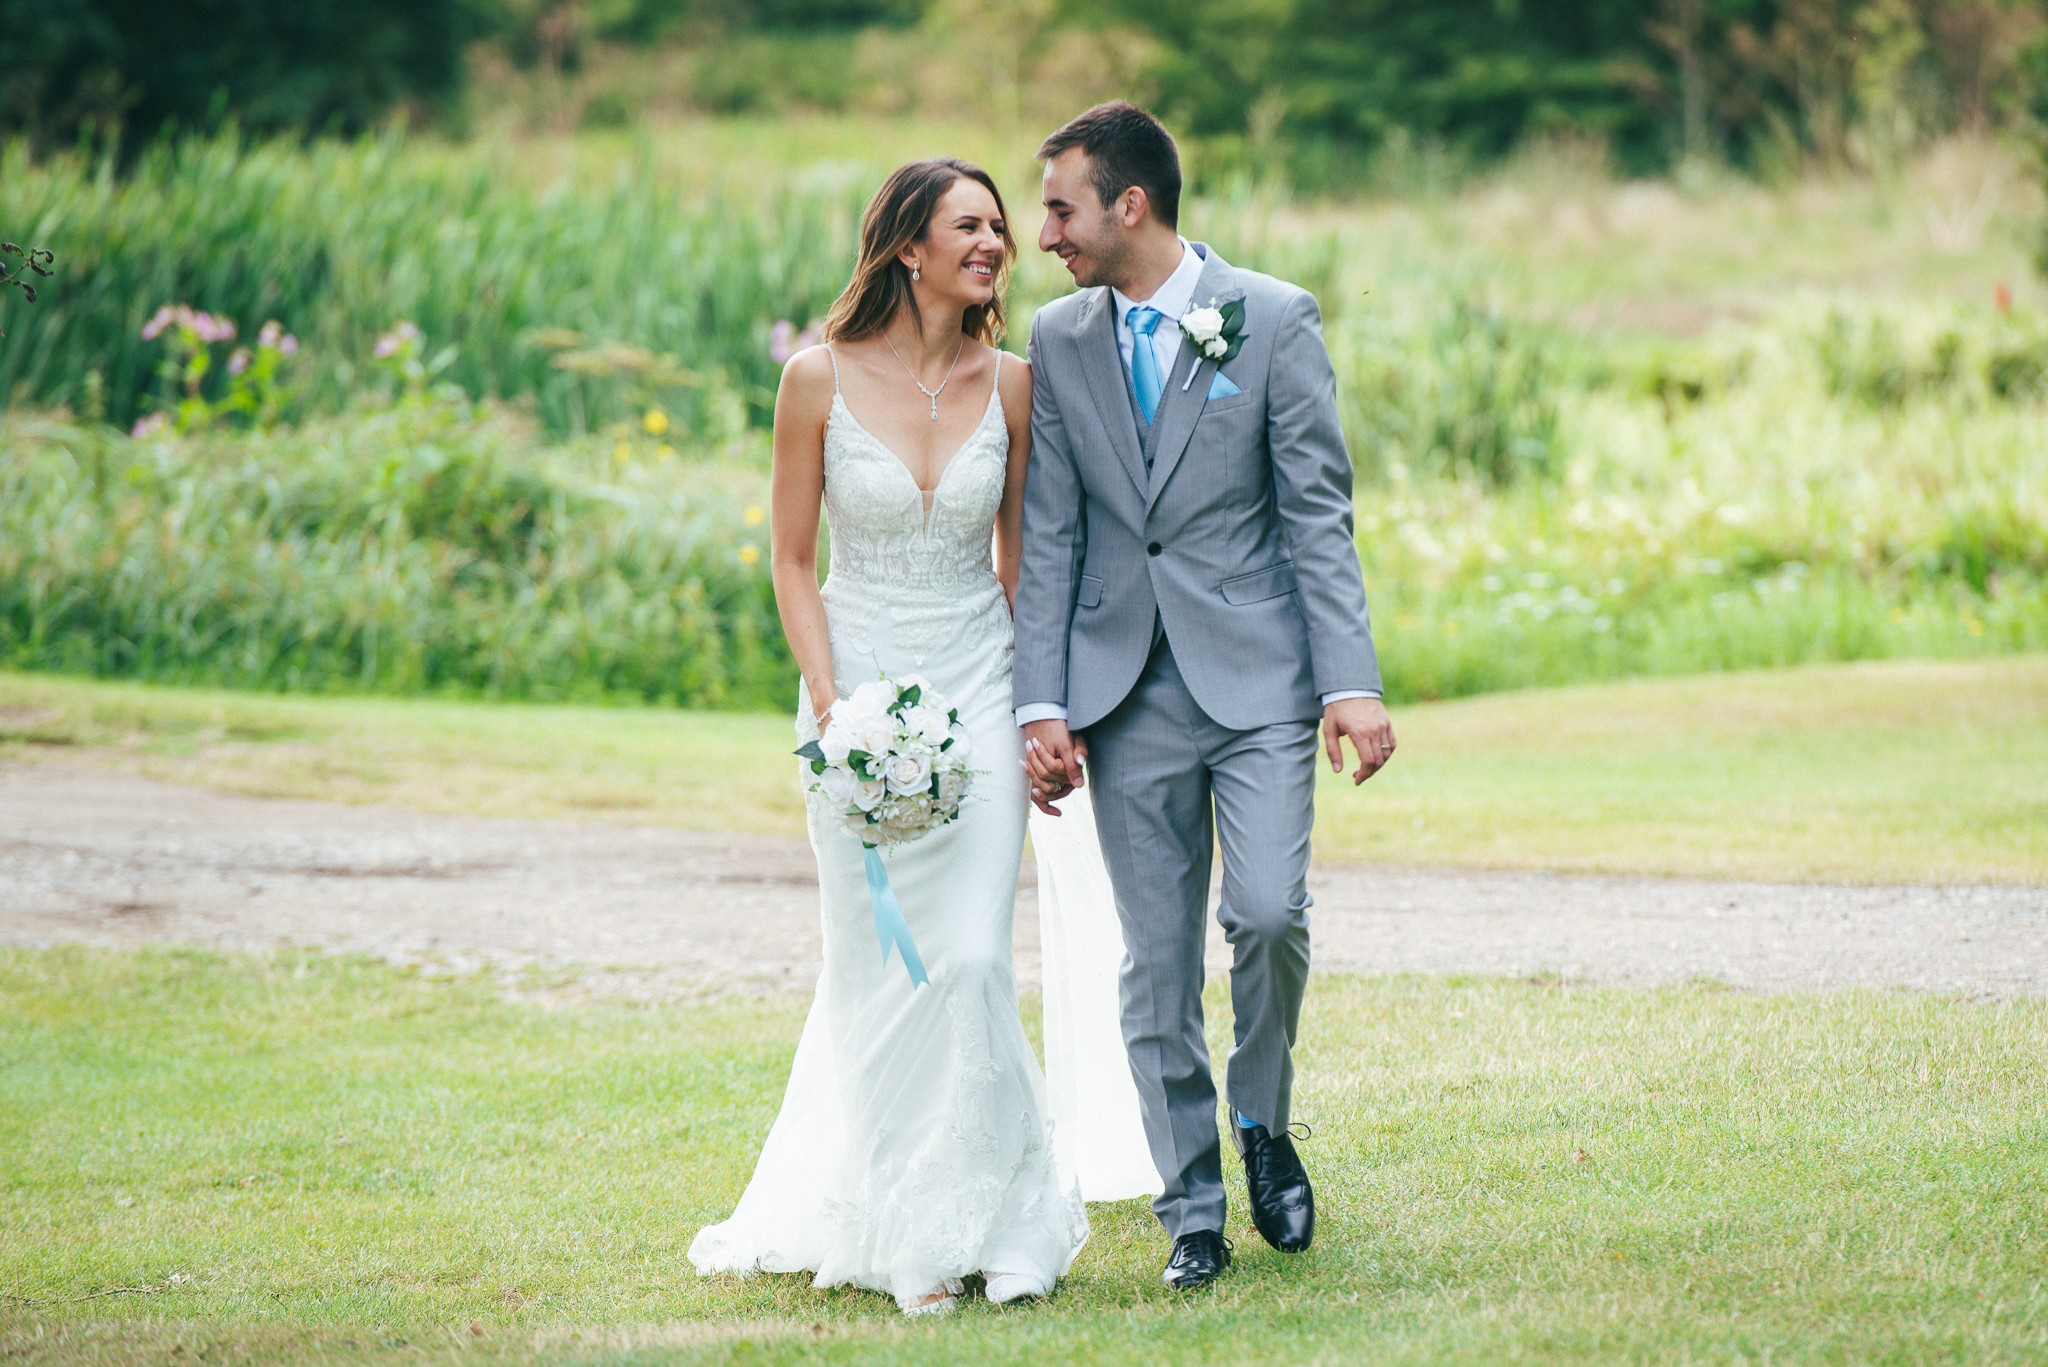 Wedding couple walking towards the camera on grass and looking at each other